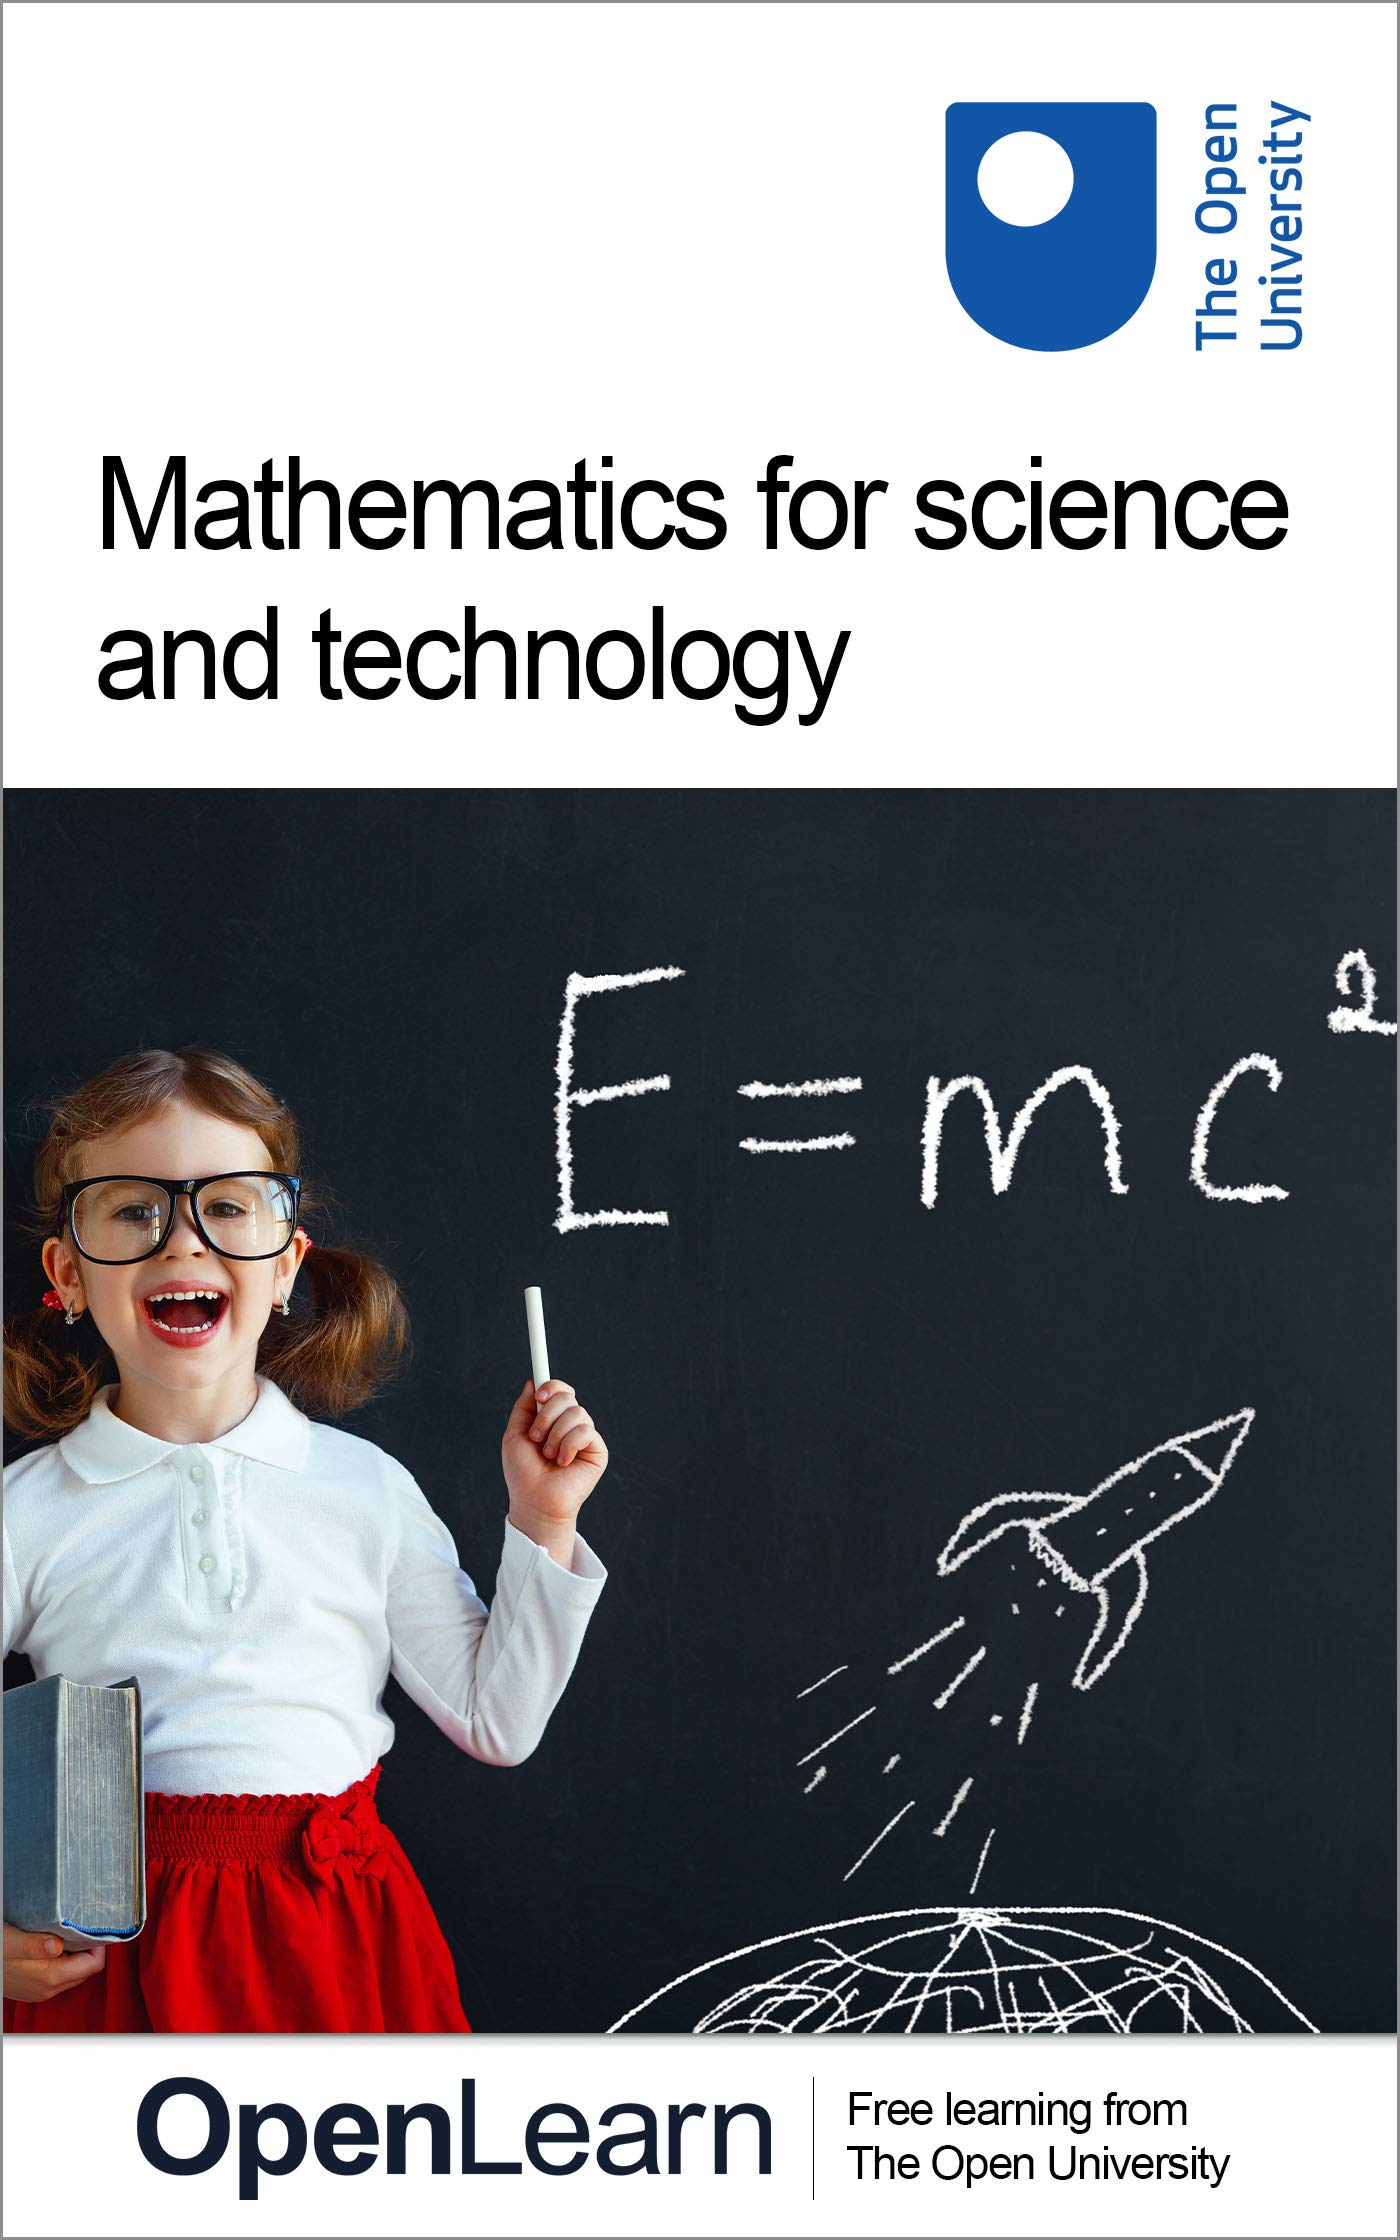 Mathematics for science and technology